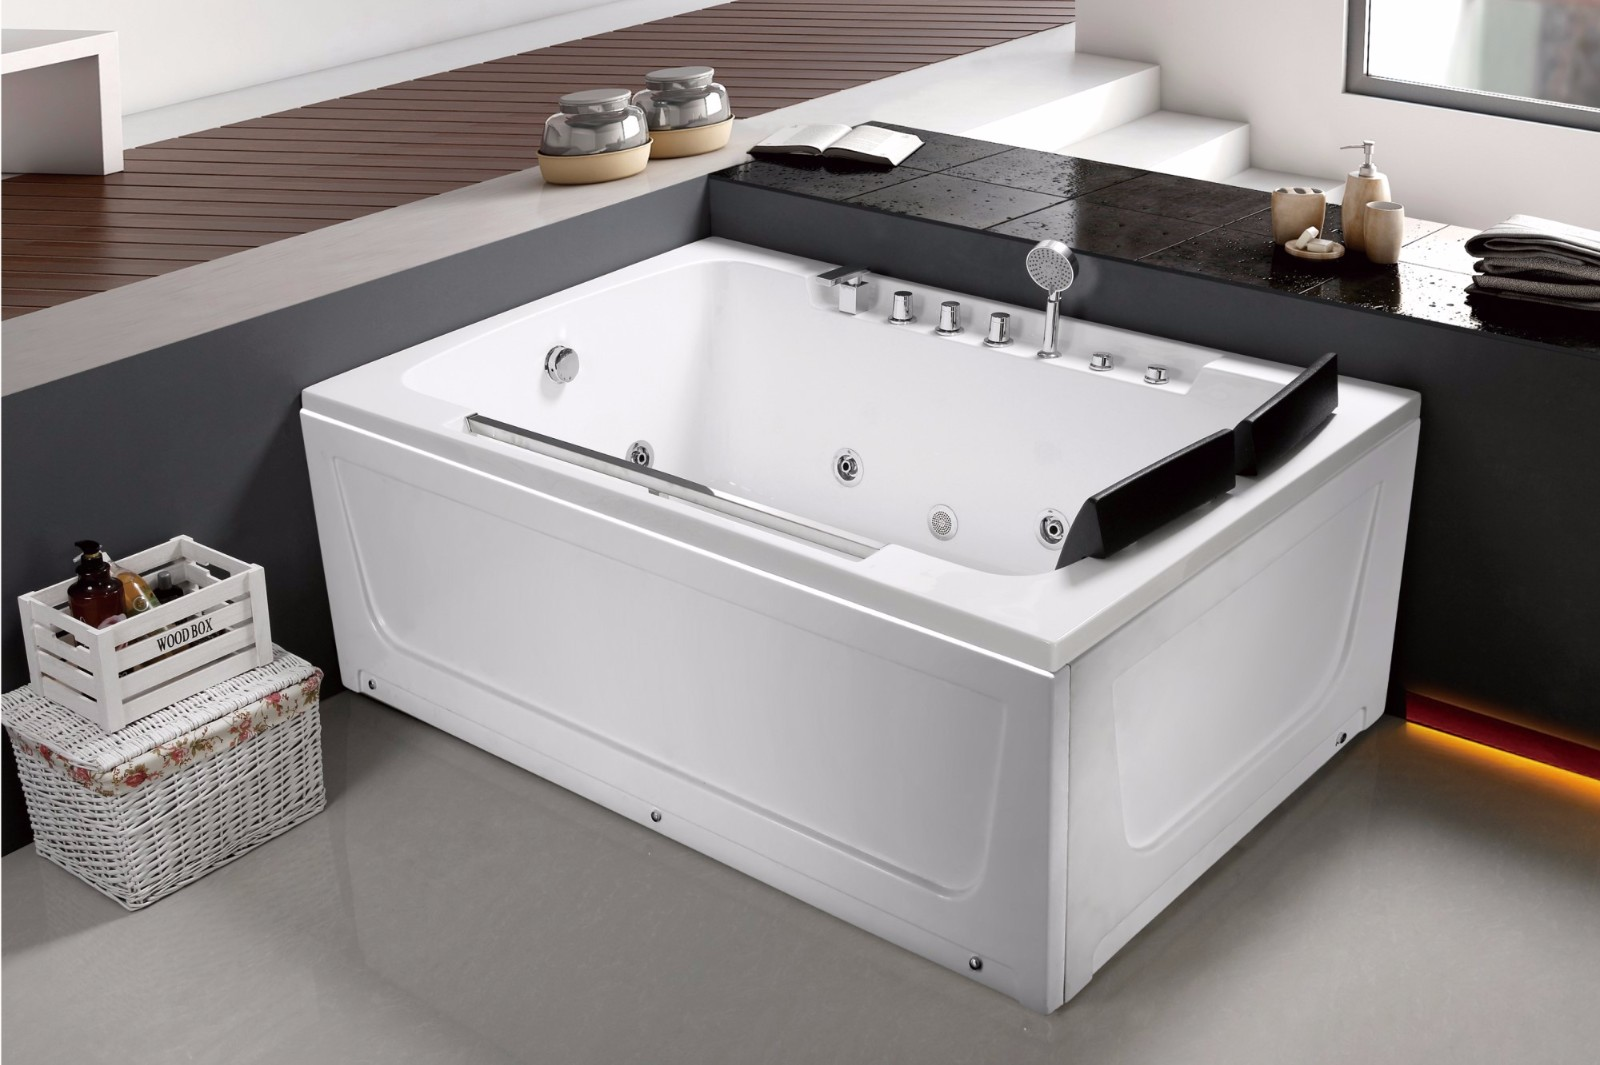 C-444 (C3065-1) (R) Bathtub for Sale with Cheap Price_副本.jpg